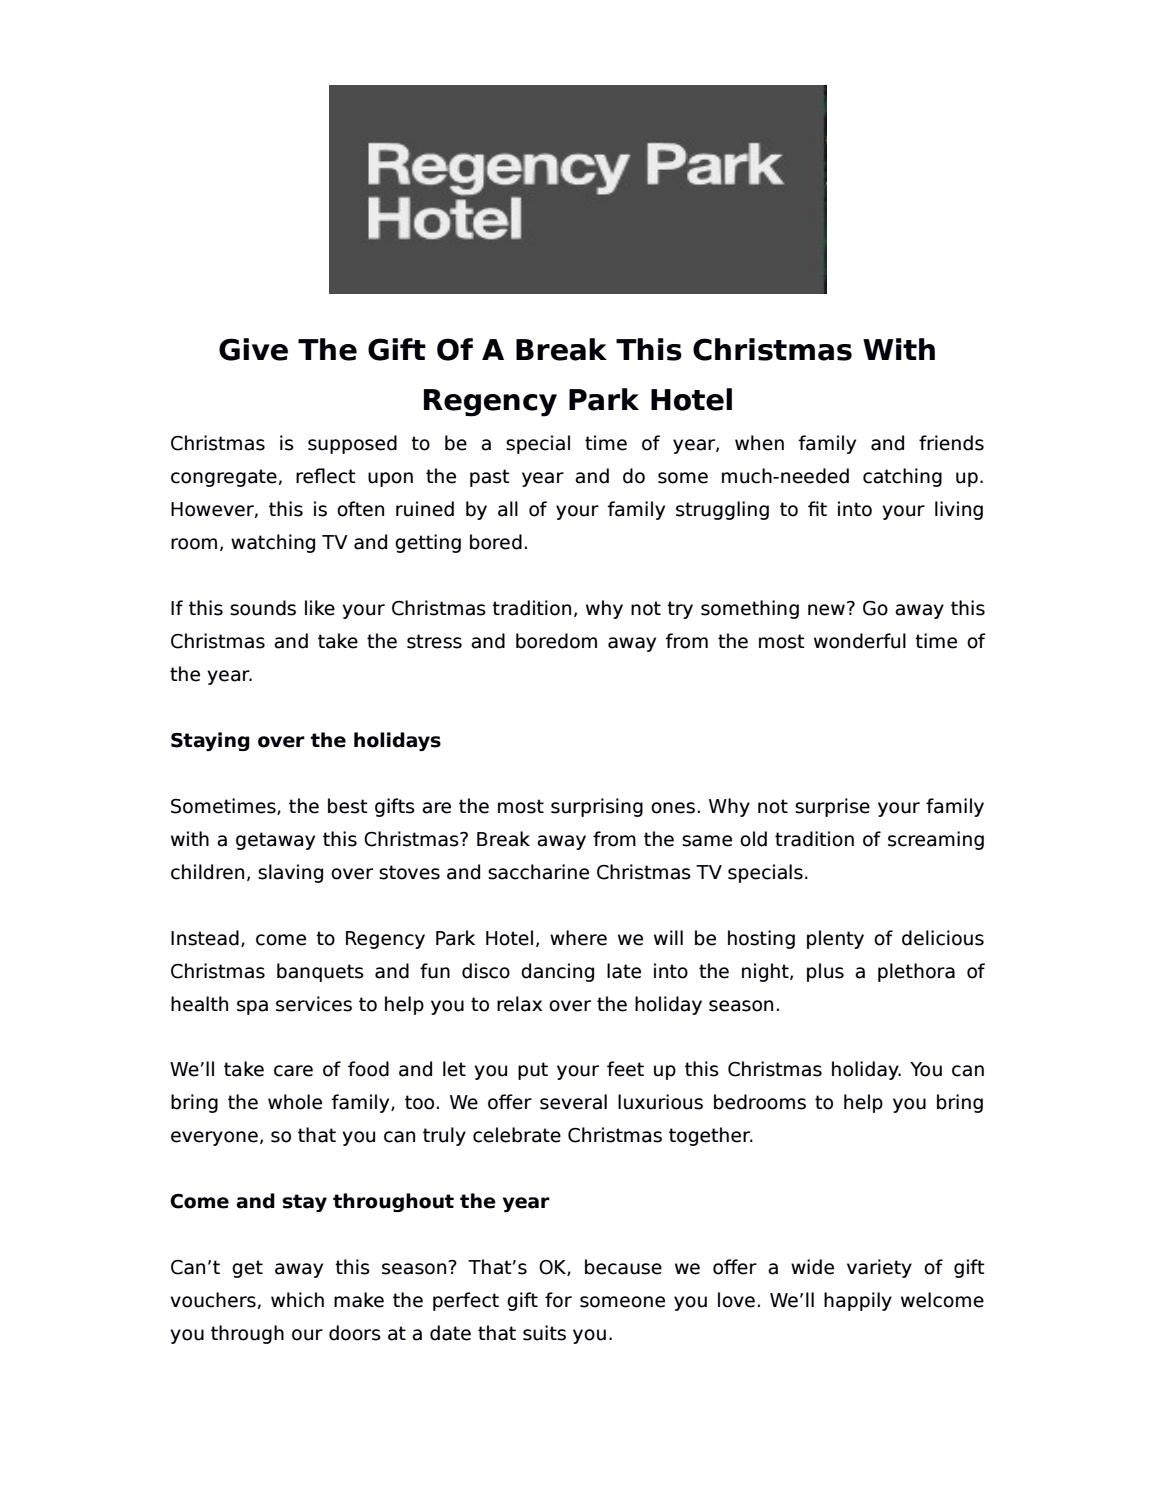 Give the gift of a break this christmas with regency park hotel by Liz Seyi - issuu